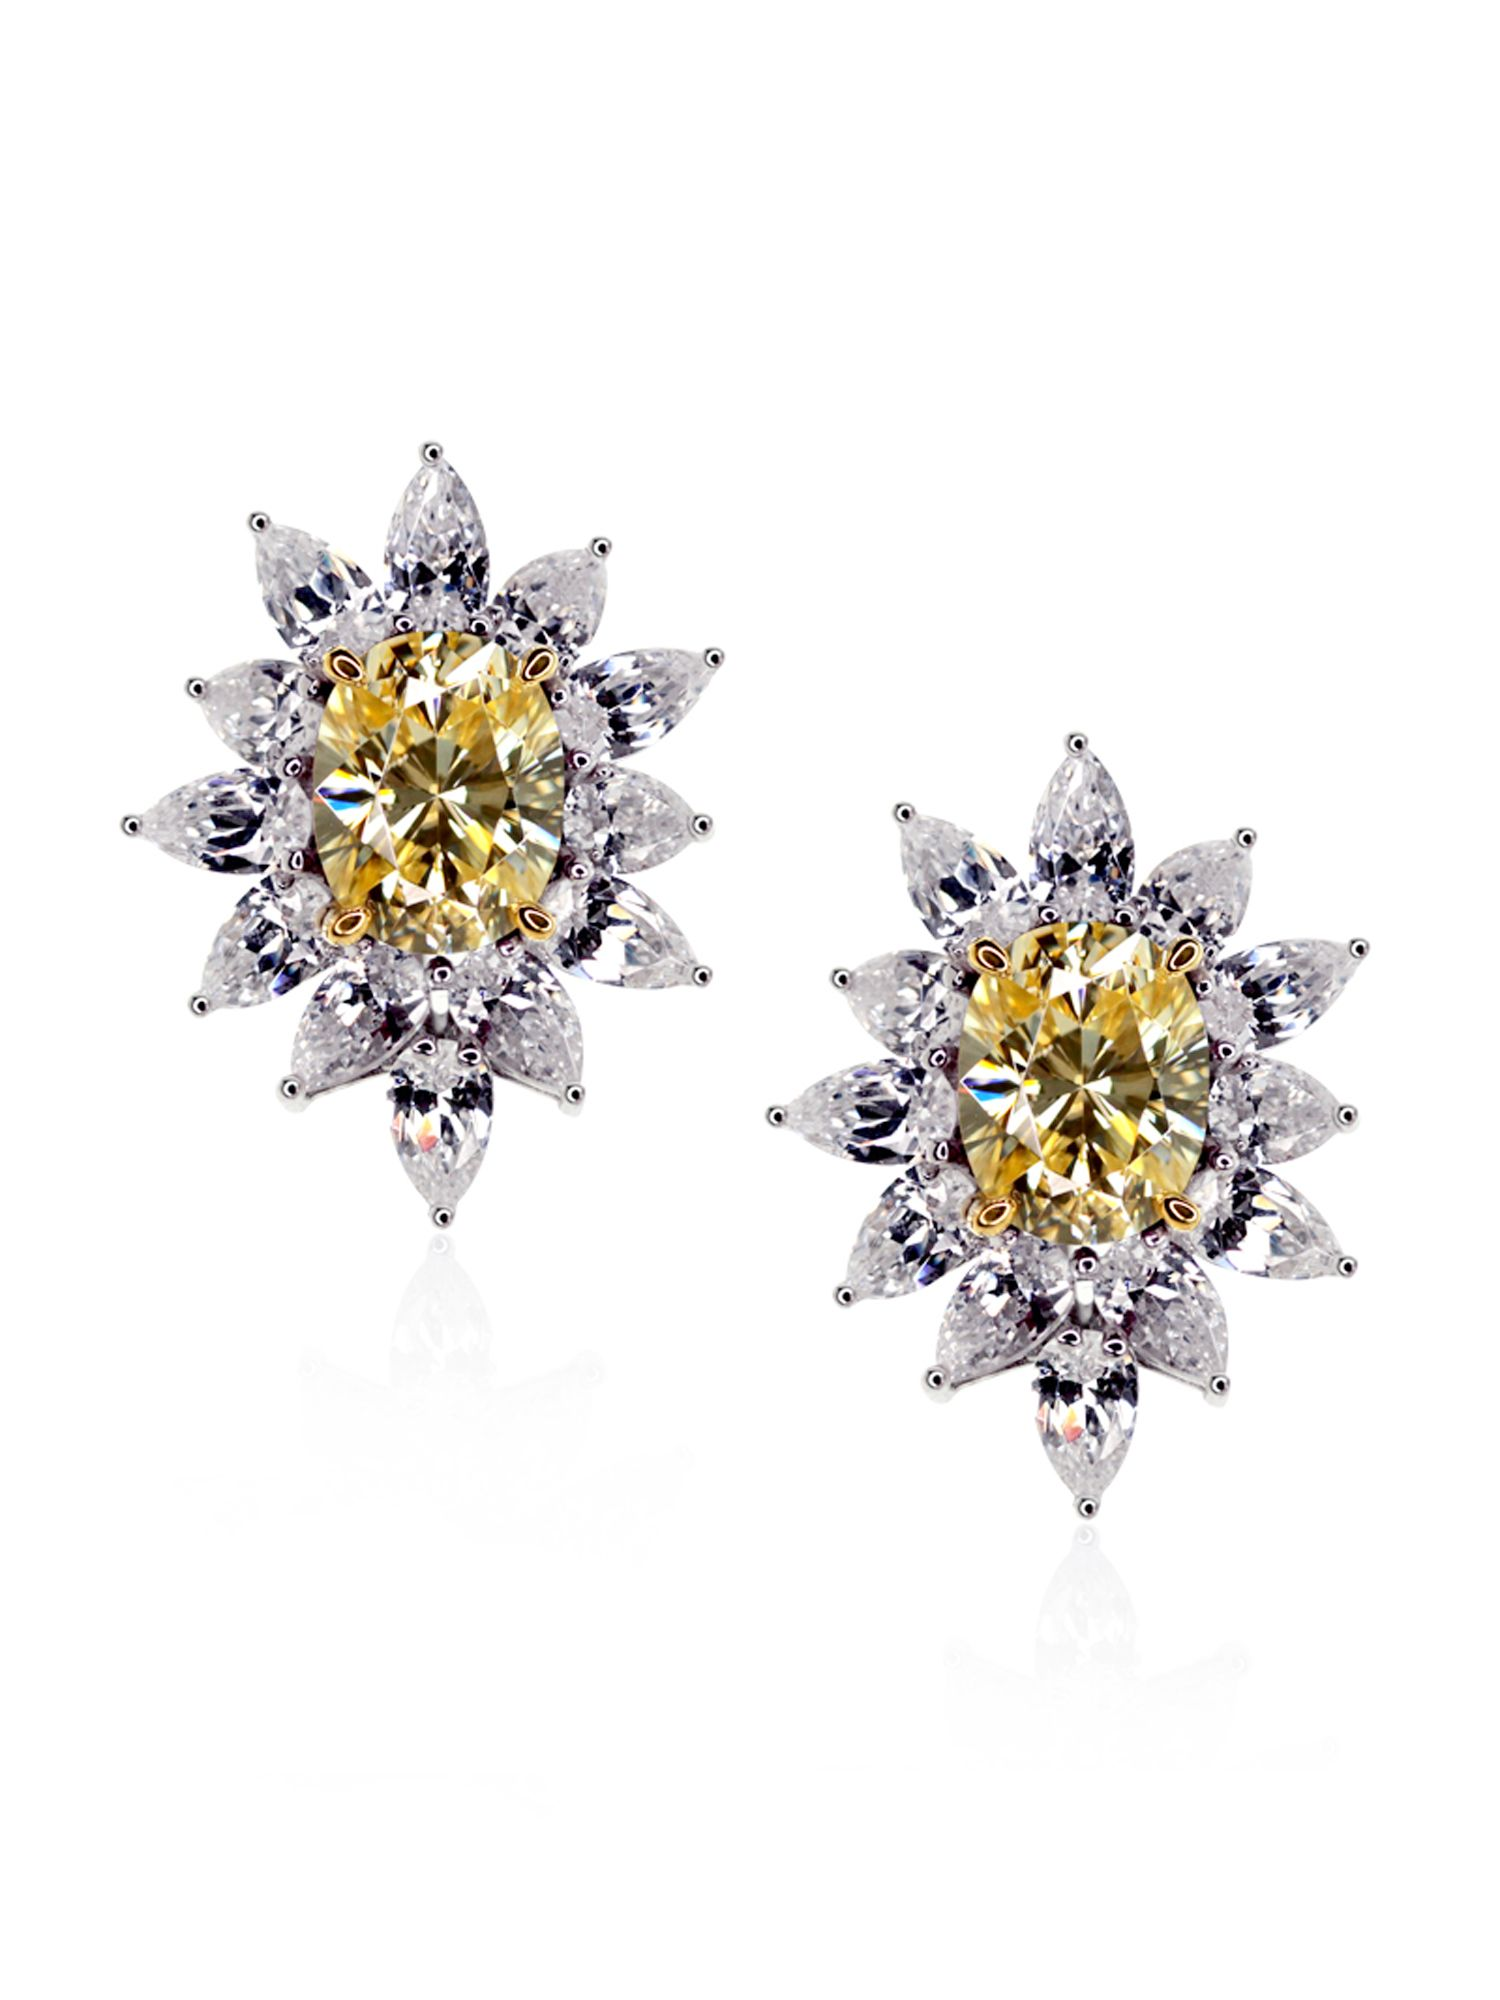 Fancy Yellow Cluster Earrings